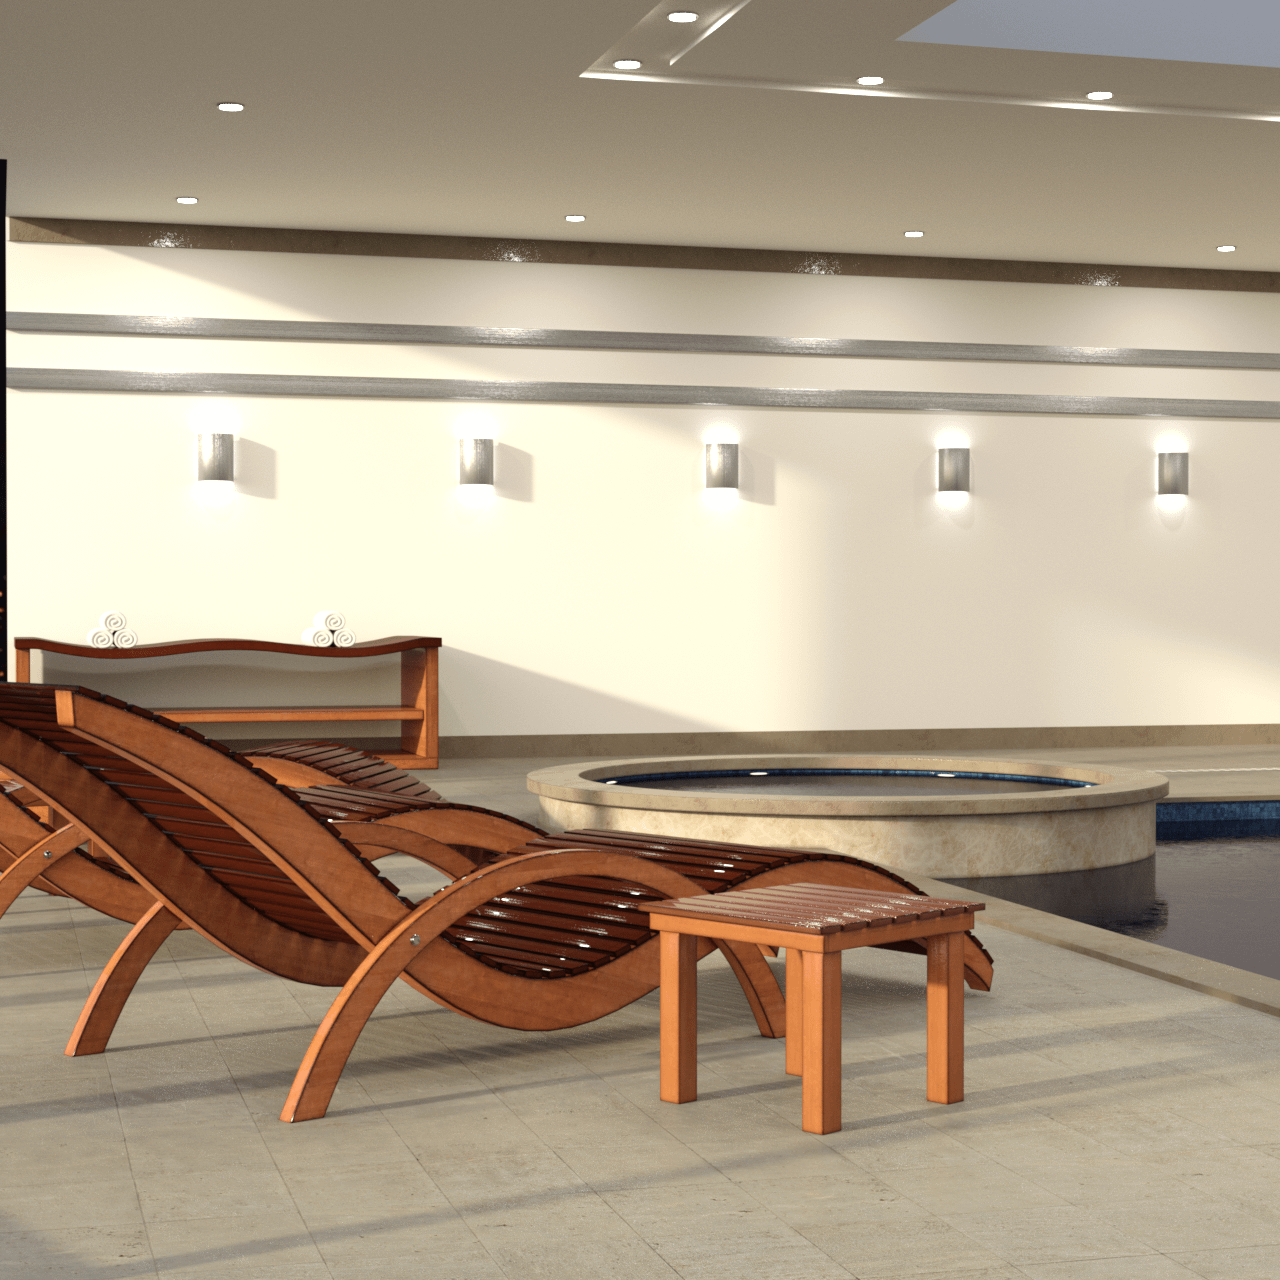 3d model of a deck chair with small table in front of the jacuzzi